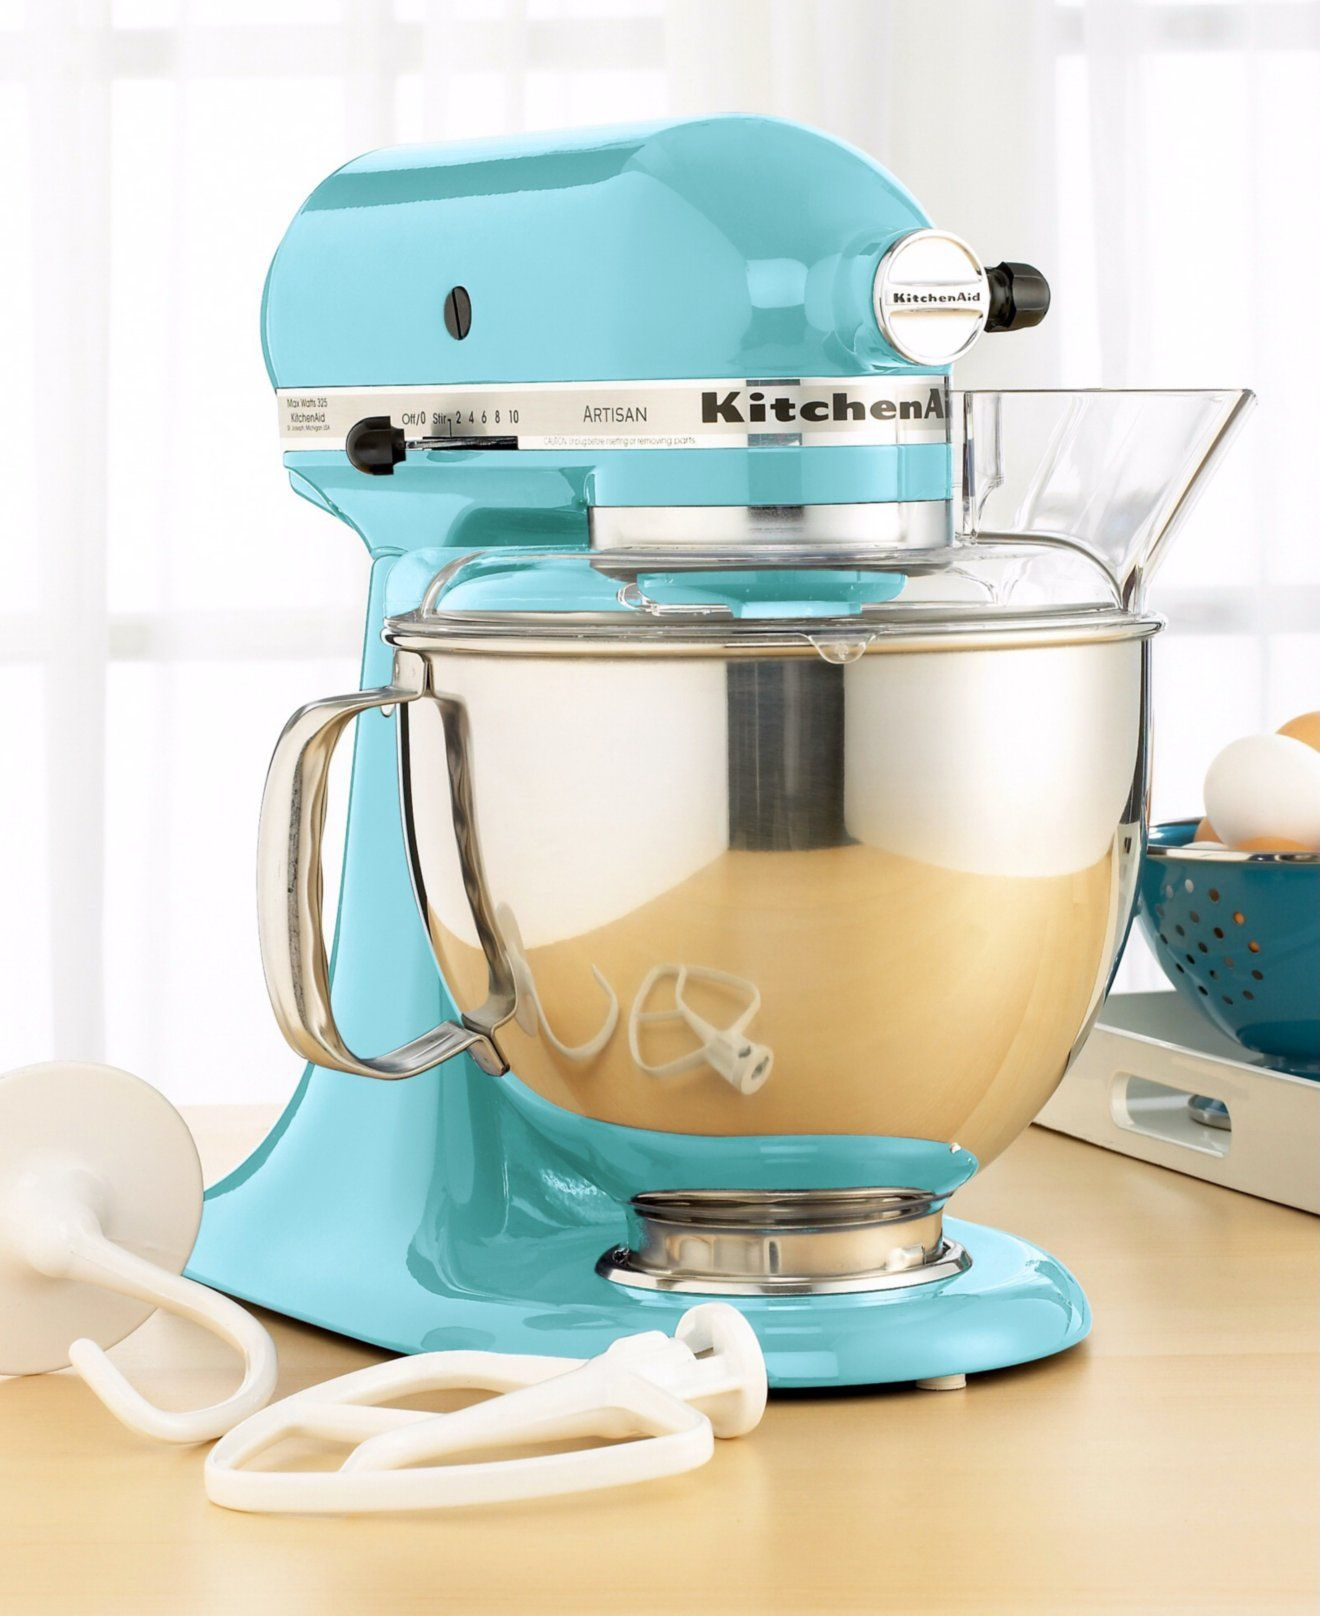 Ksm150ps Artisan 5 Qt Stand Mixer Things In 2019